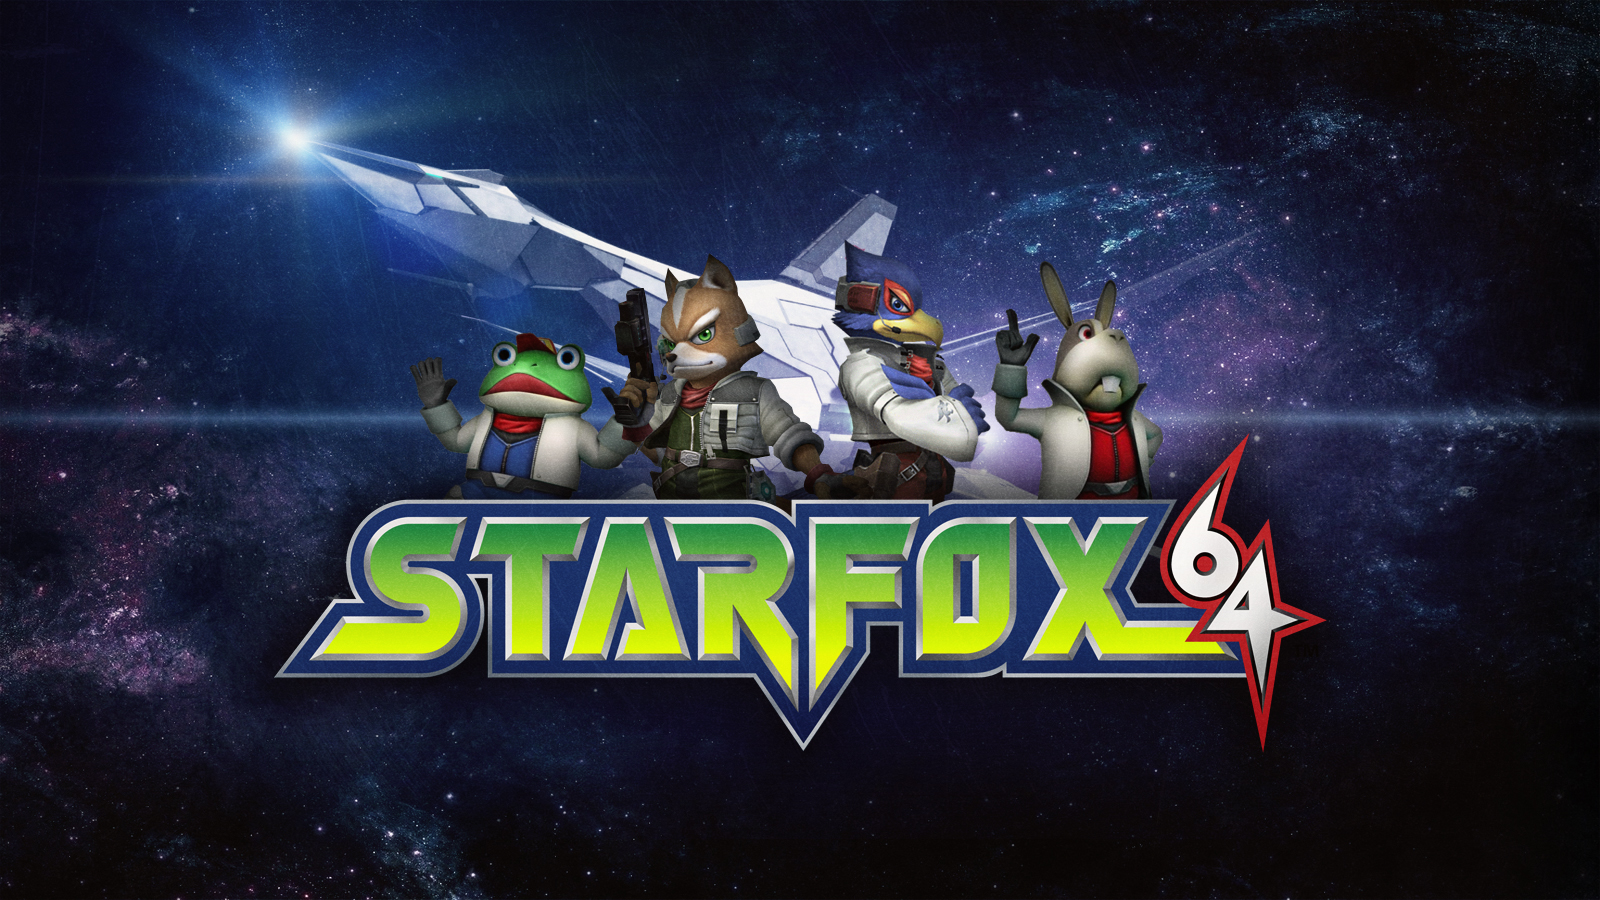 Star Fox 64 Wallpaper